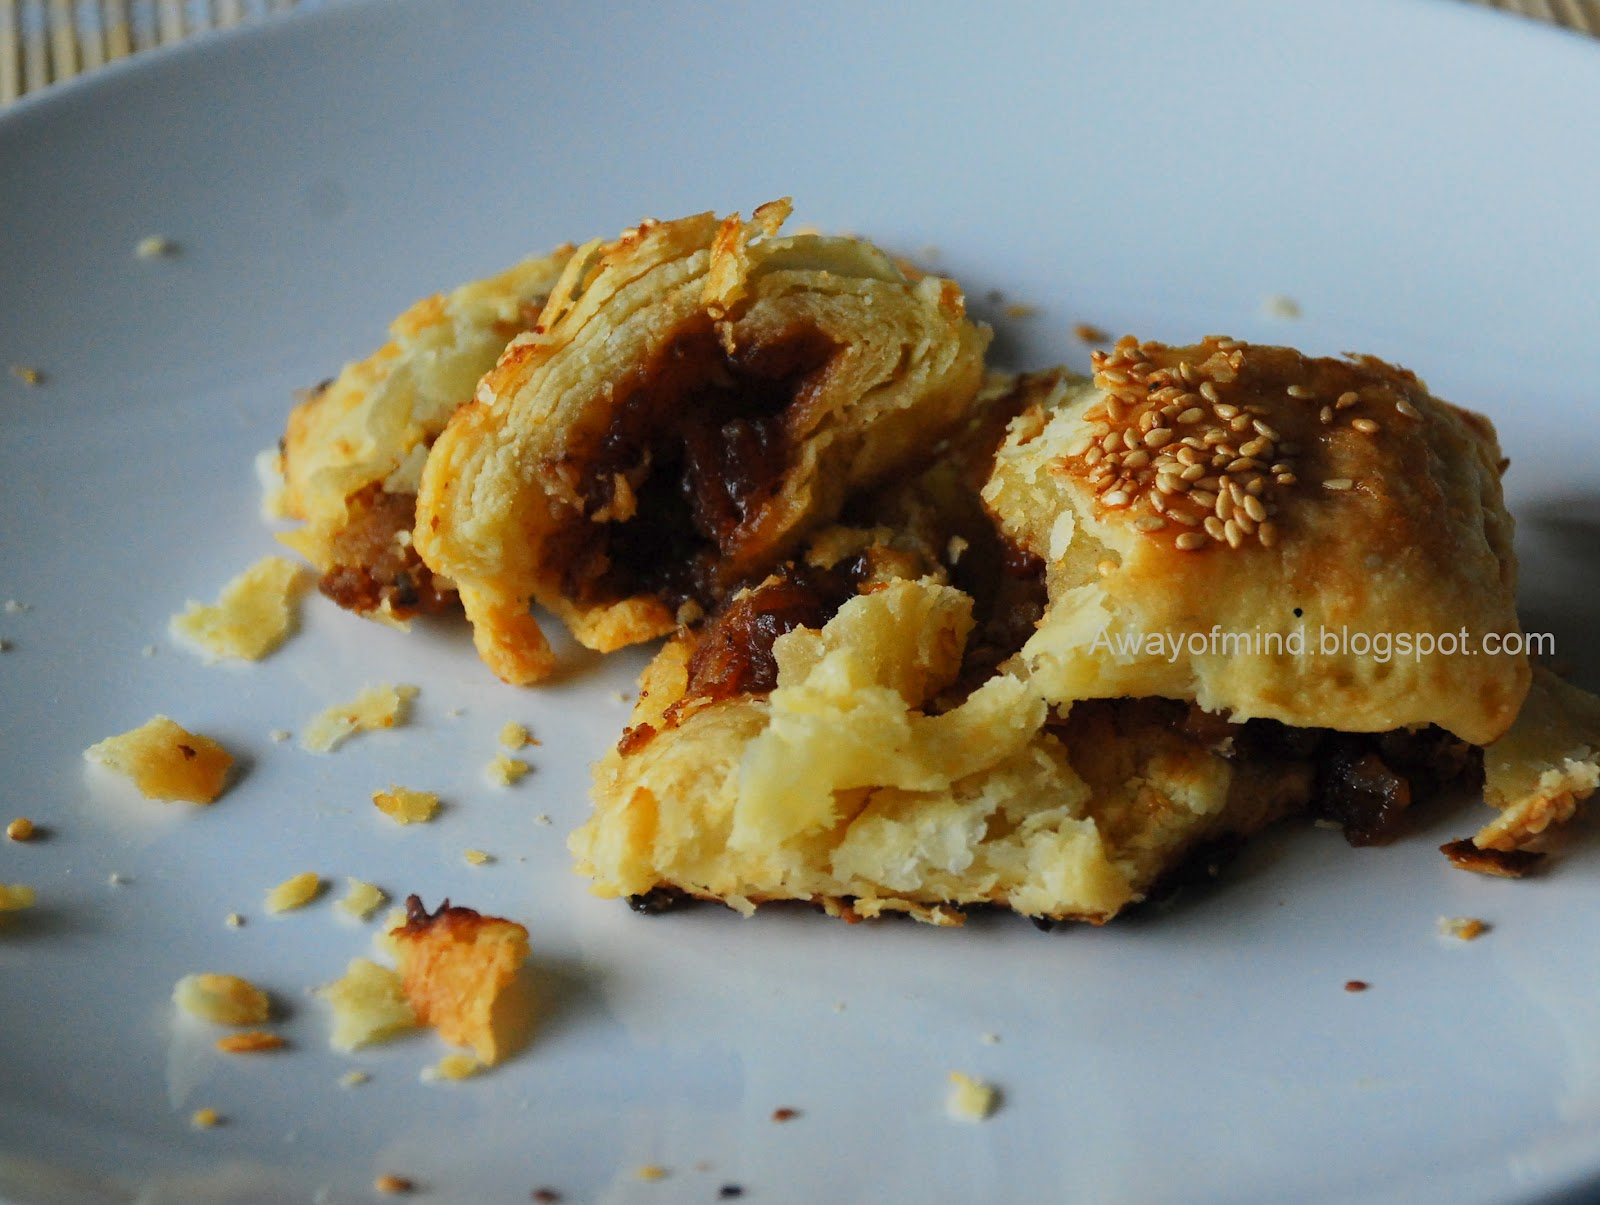 Awayofmind Bakery House: Baked Barbecued Pork Puffs (Char ...